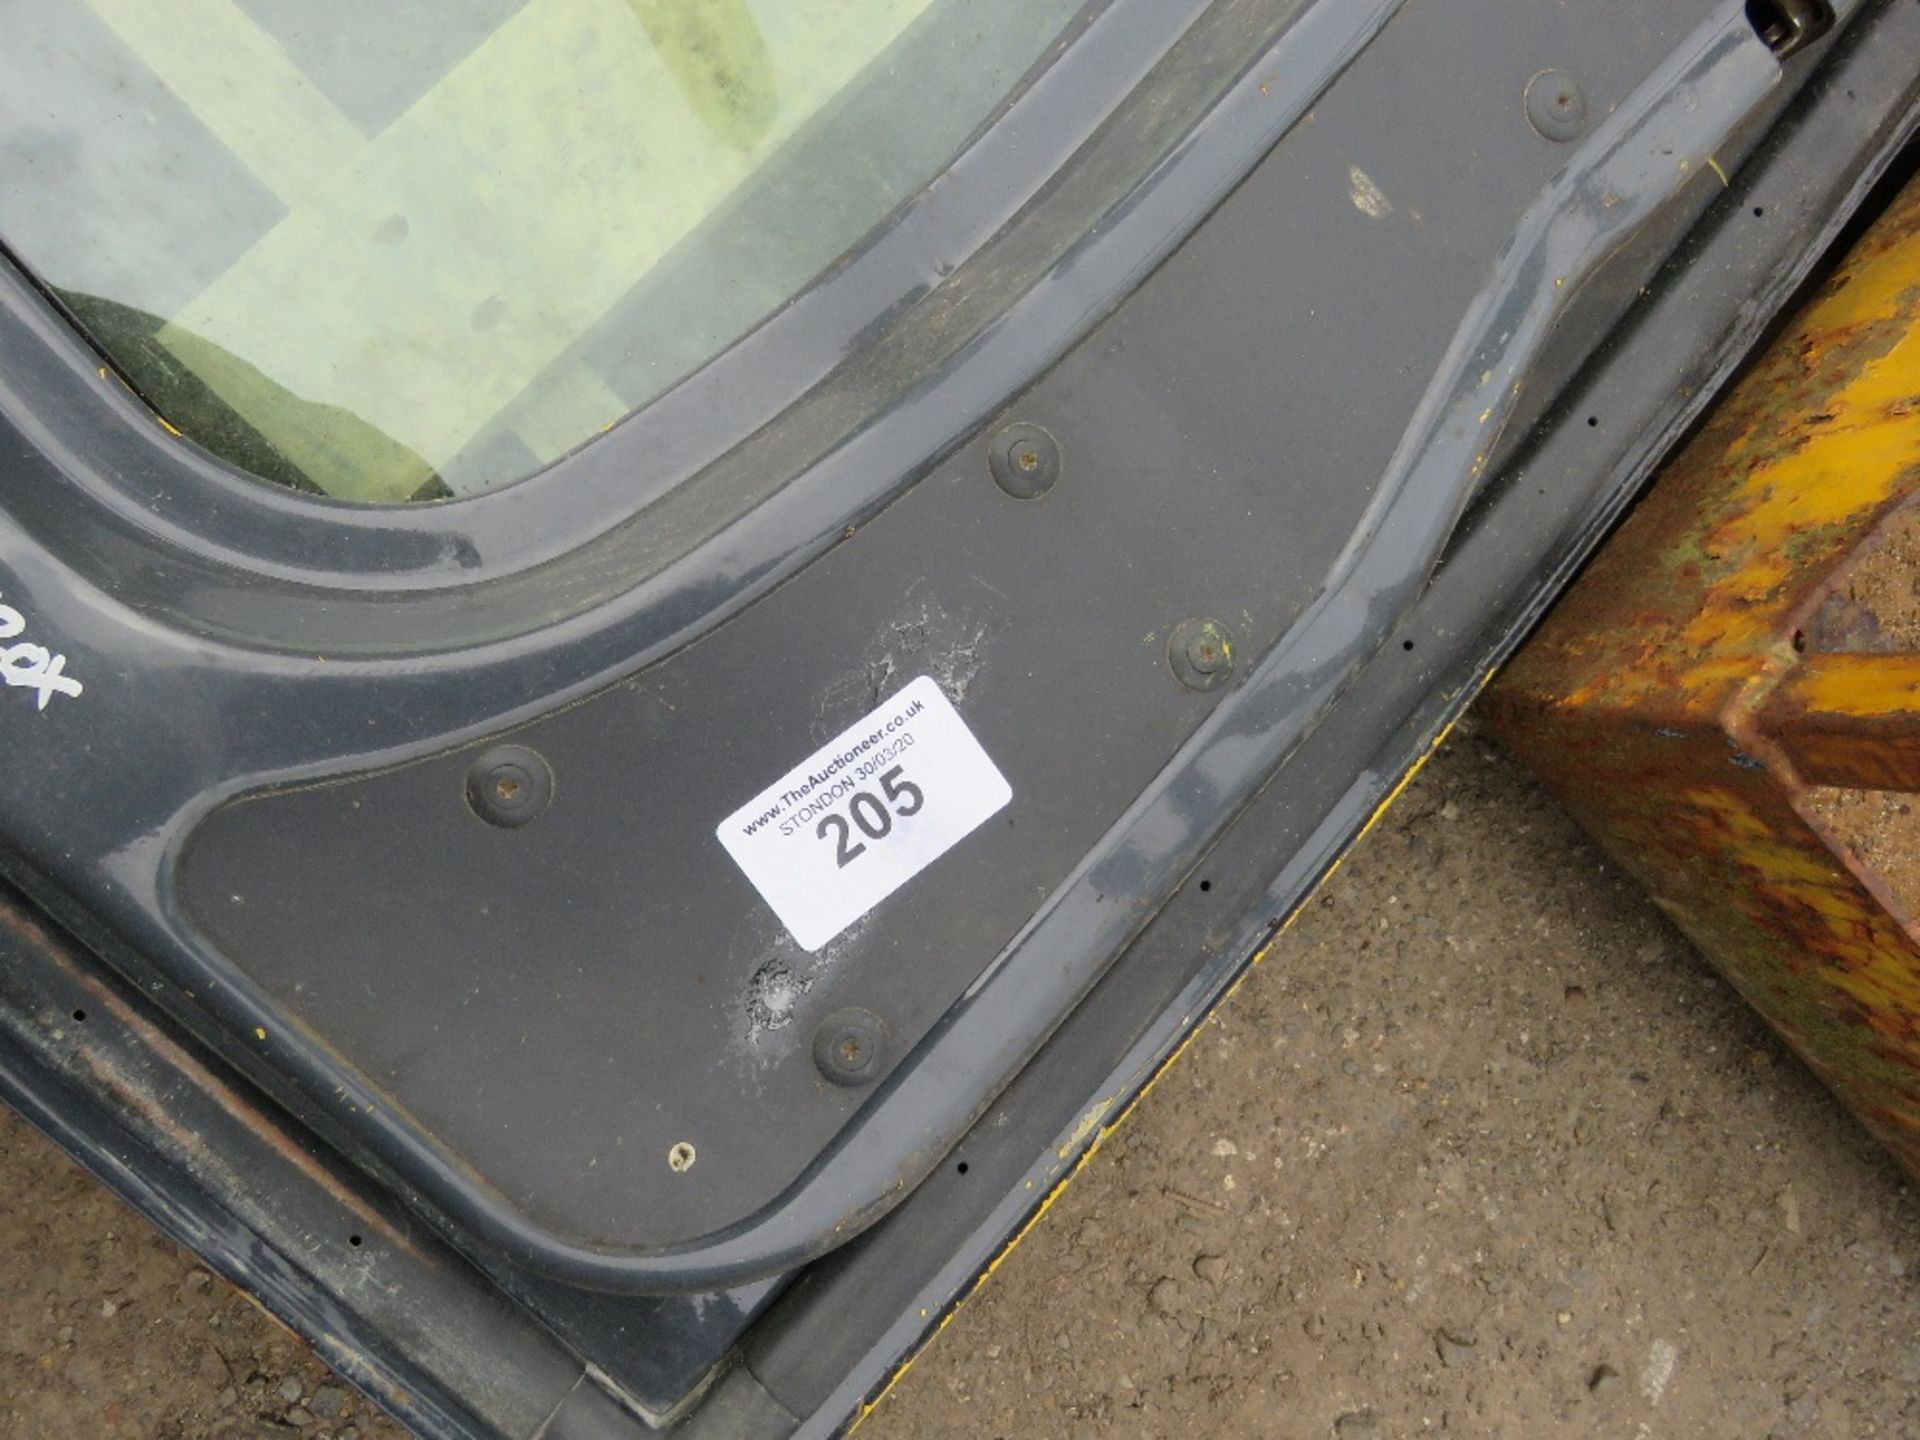 Lot 205 - Komatsu 16tonne excavator door with glass, yr2014 approx.